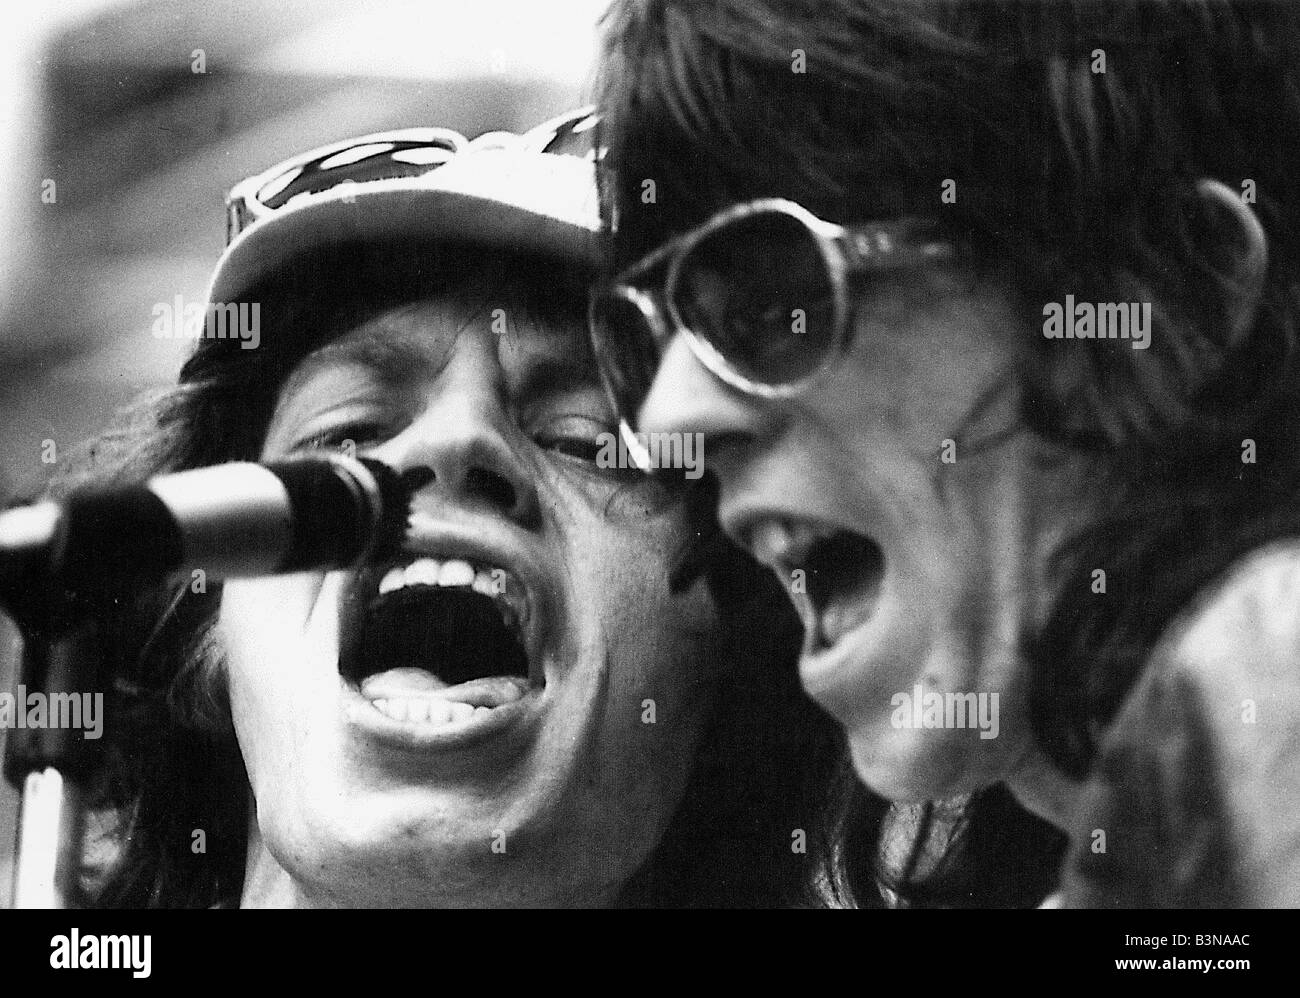 ROLLING STONES Mick Jagger e Keith Richards circa 1980 Immagini Stock